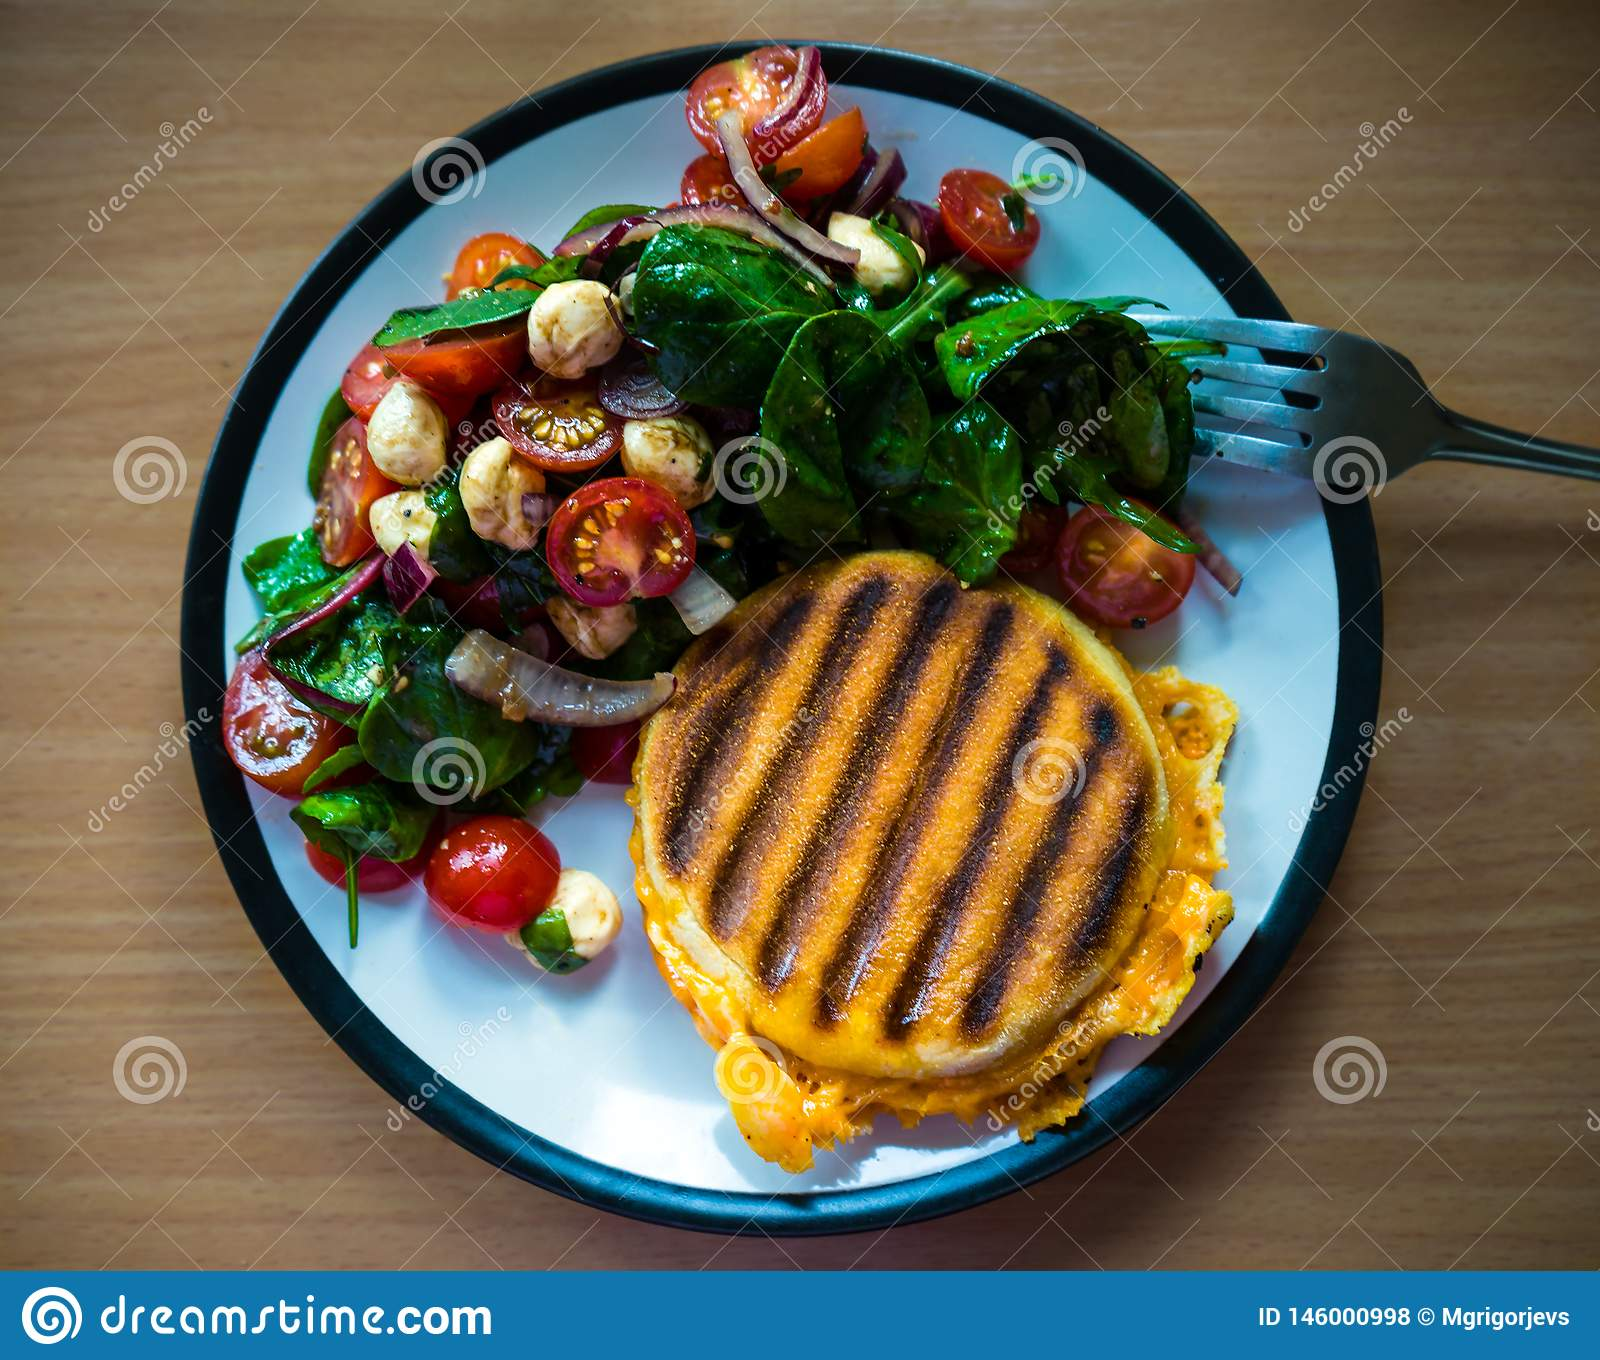 Homemade Breakfast grilled English miffin Sandwich served with side salad: cherry tomatoes, pearl mozzarella and spinach